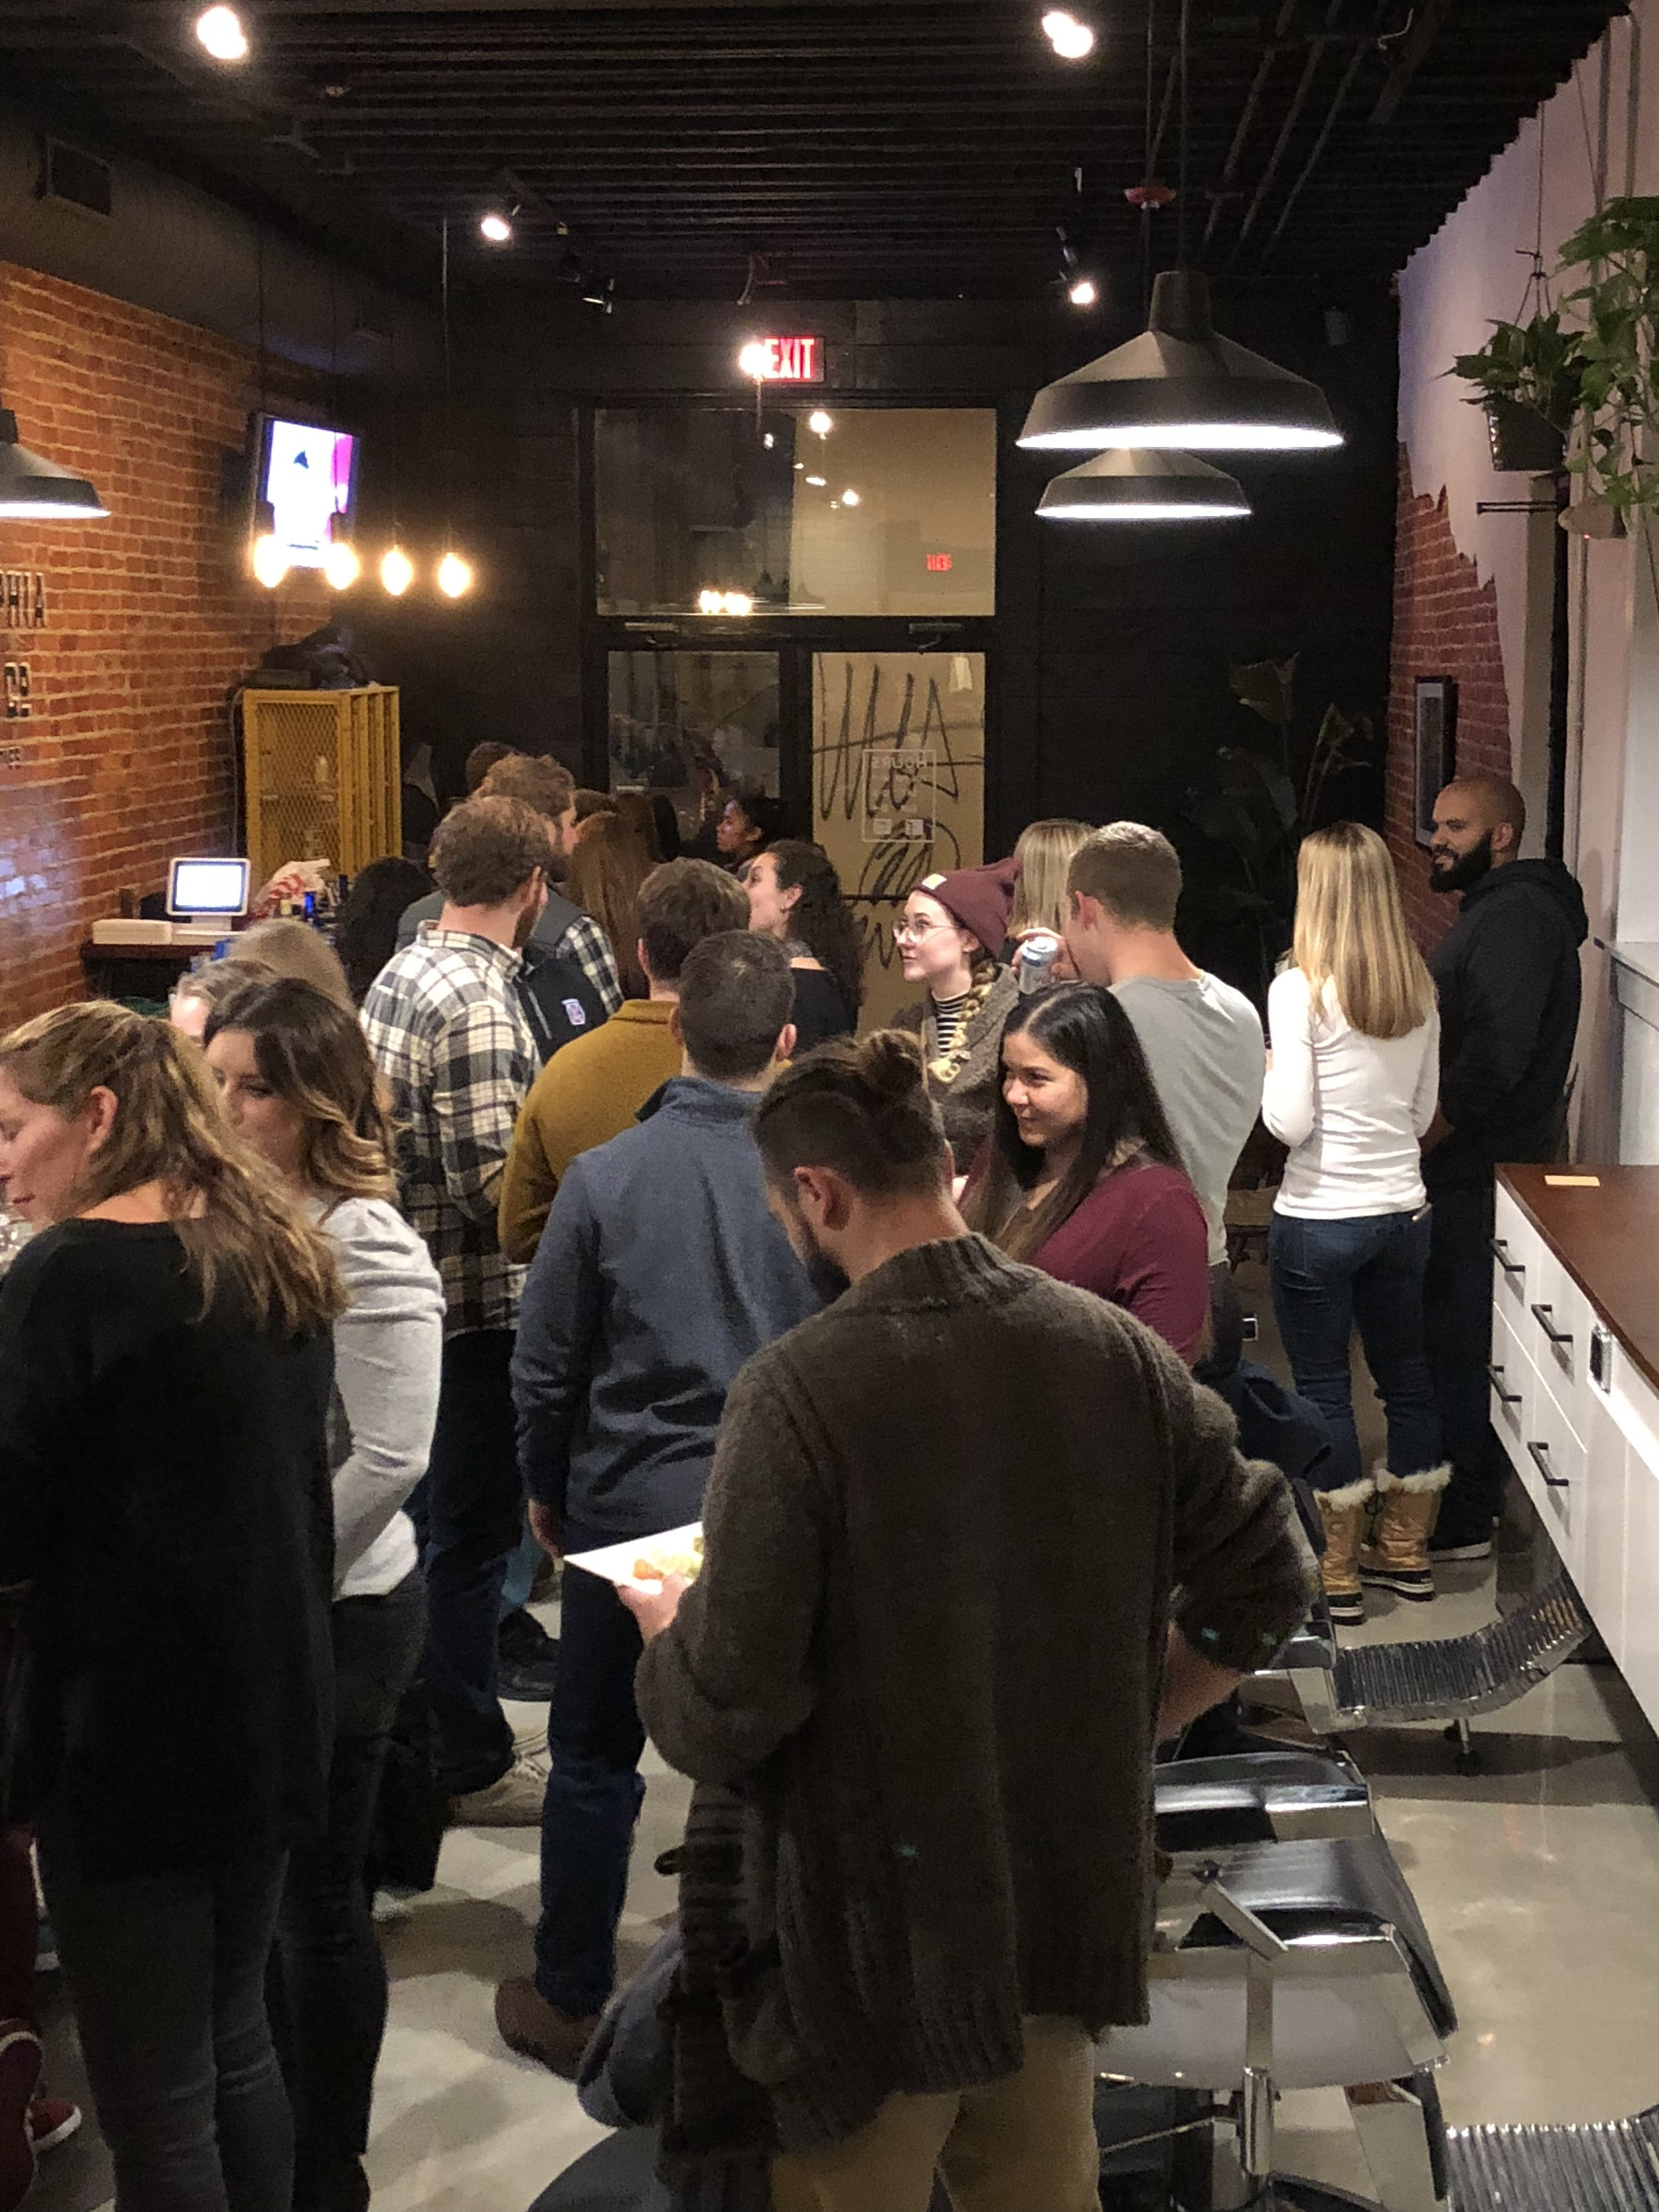 GRAND OPENING PARTY - Join us at The Philadelphia Barber Company on Saturday, January 27th at 7pm for a formal introduction of our shop to Northern Liberties. Our owners invite you all to come by for some live entertainment, mingle with our barbers, and take a tour of our newly built barber shop.